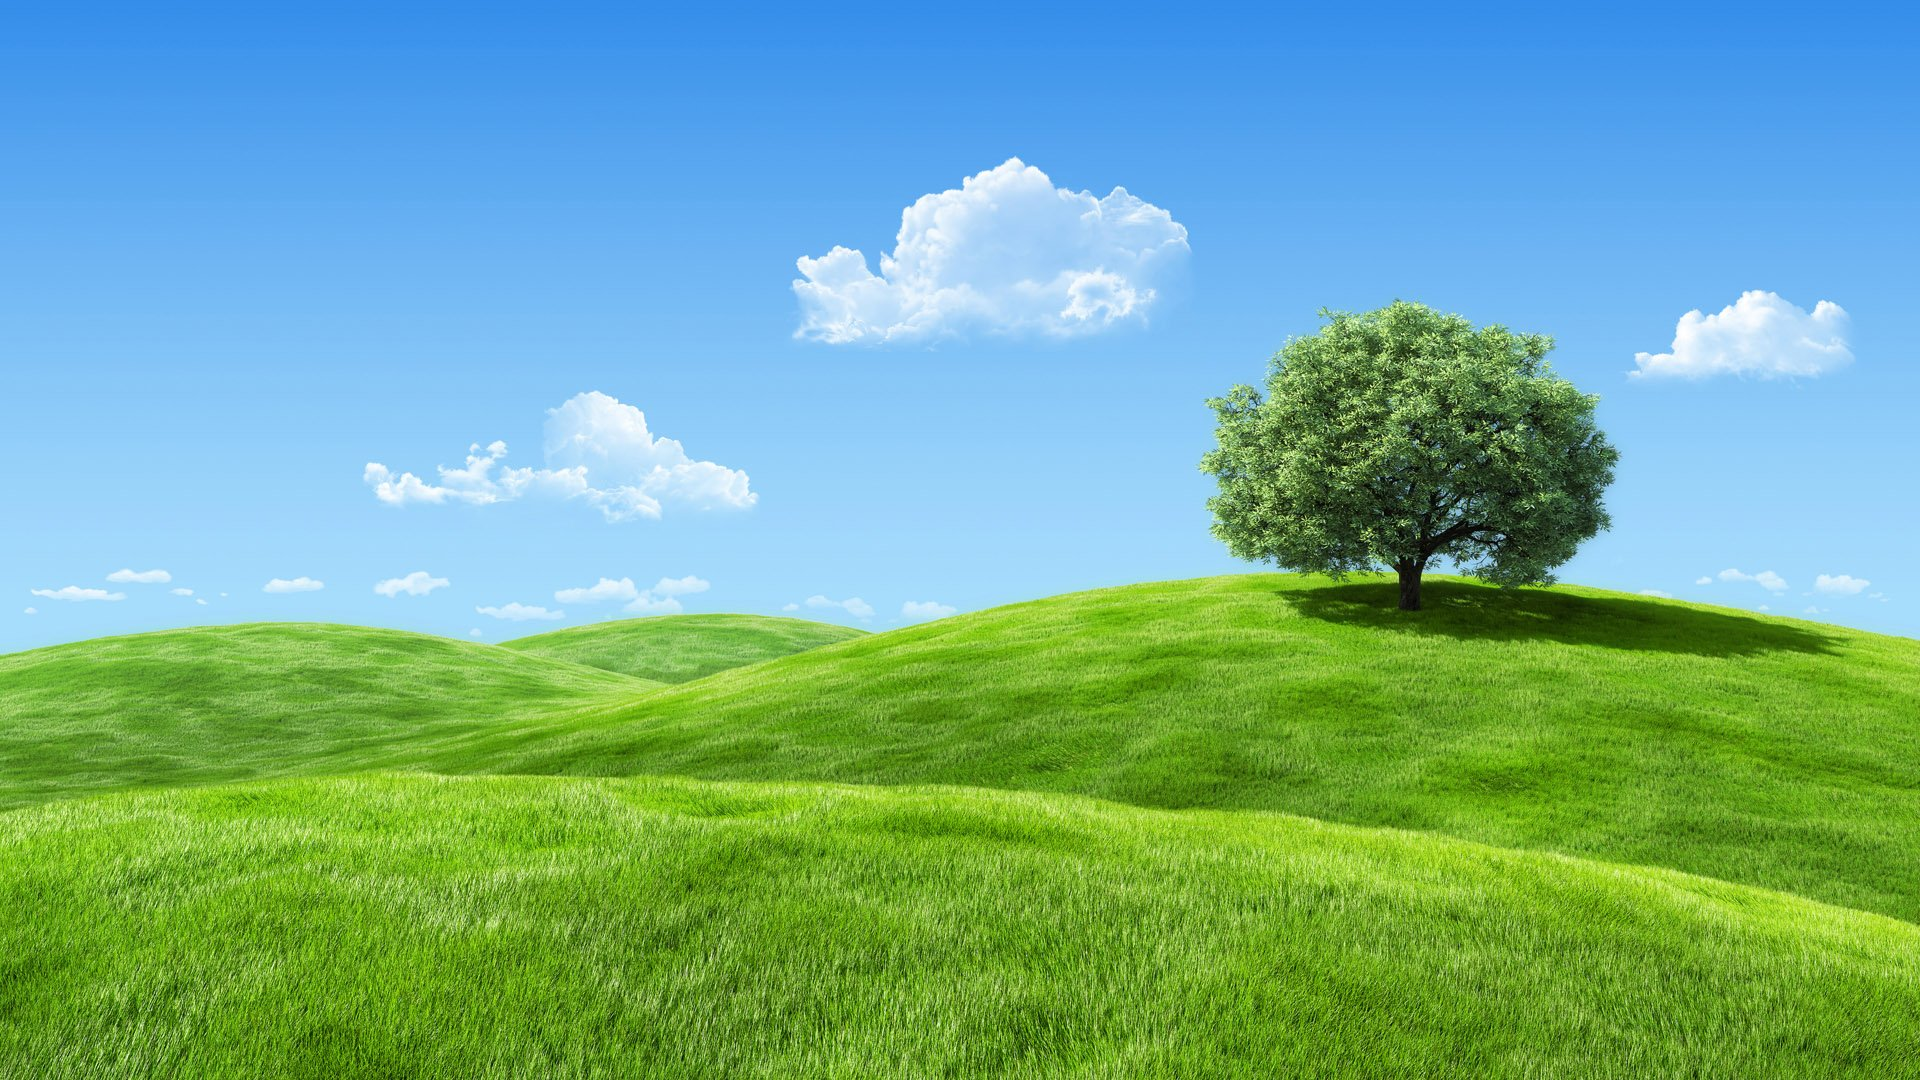 Green Meadow Wallpapers  WallpaperSafari